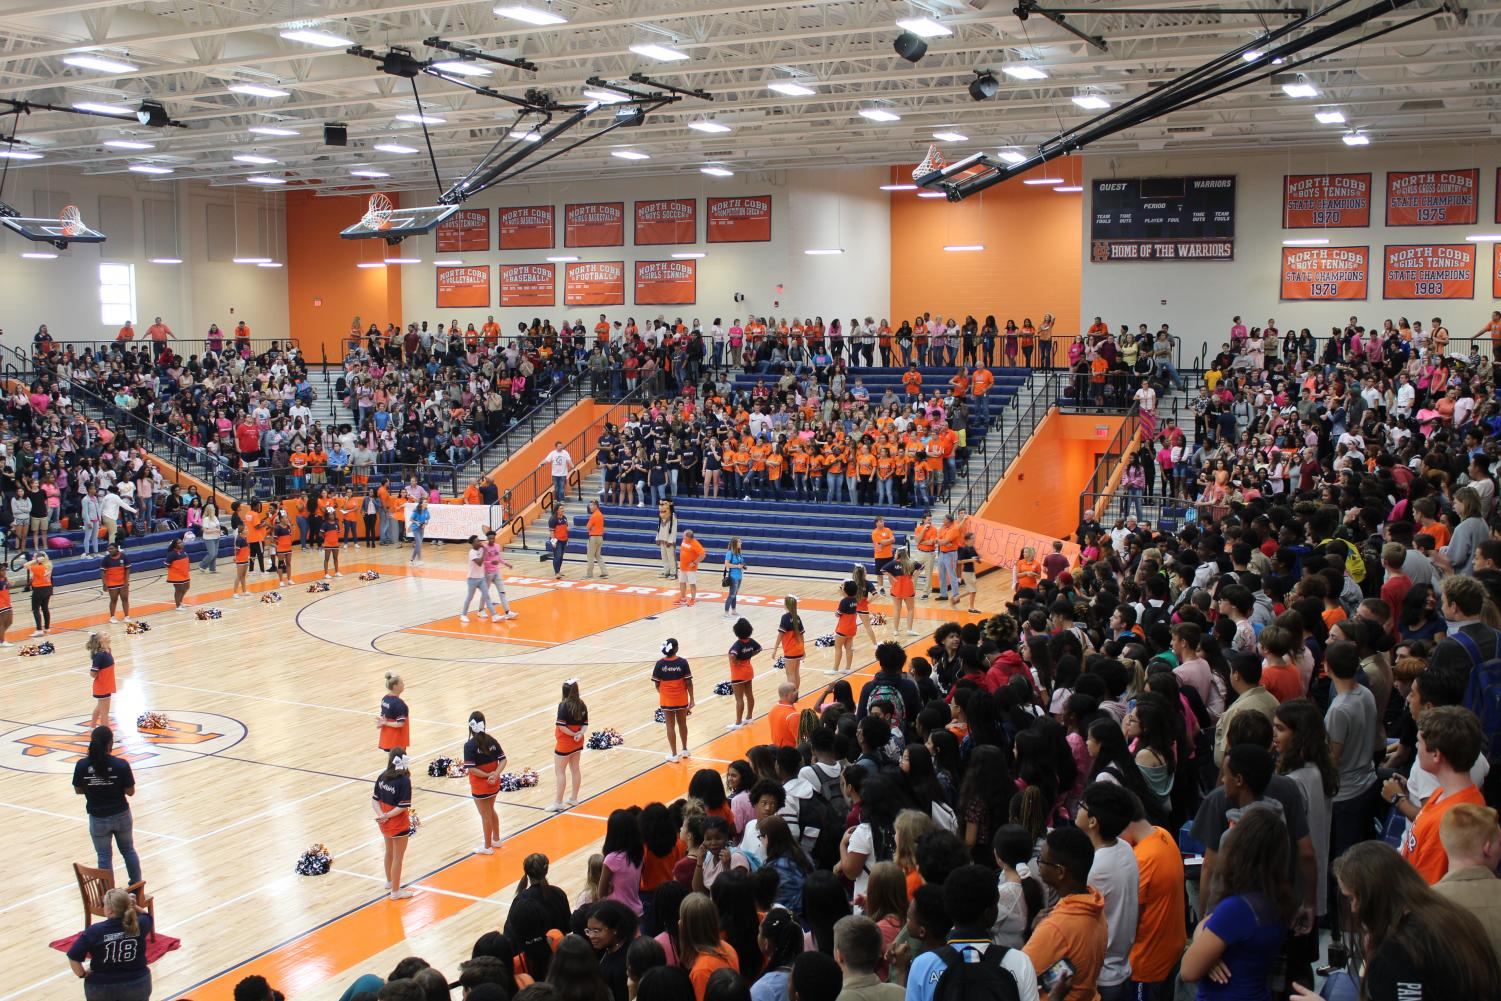 The crowd of more than 2,500 students watch in anticipation as the speakers try to fire up the crowd, leading into the prominent entrance of the football team. The cheerleaders pause their dancing to place a central focus on the team's entrance, serving as a solid start and promotion to the year's football season. The Arena lights eventually dimmed, and a variety of students across the space lit up their cell-phone LED lights, waving them in the air in support of the football players about to race through a  large banner.